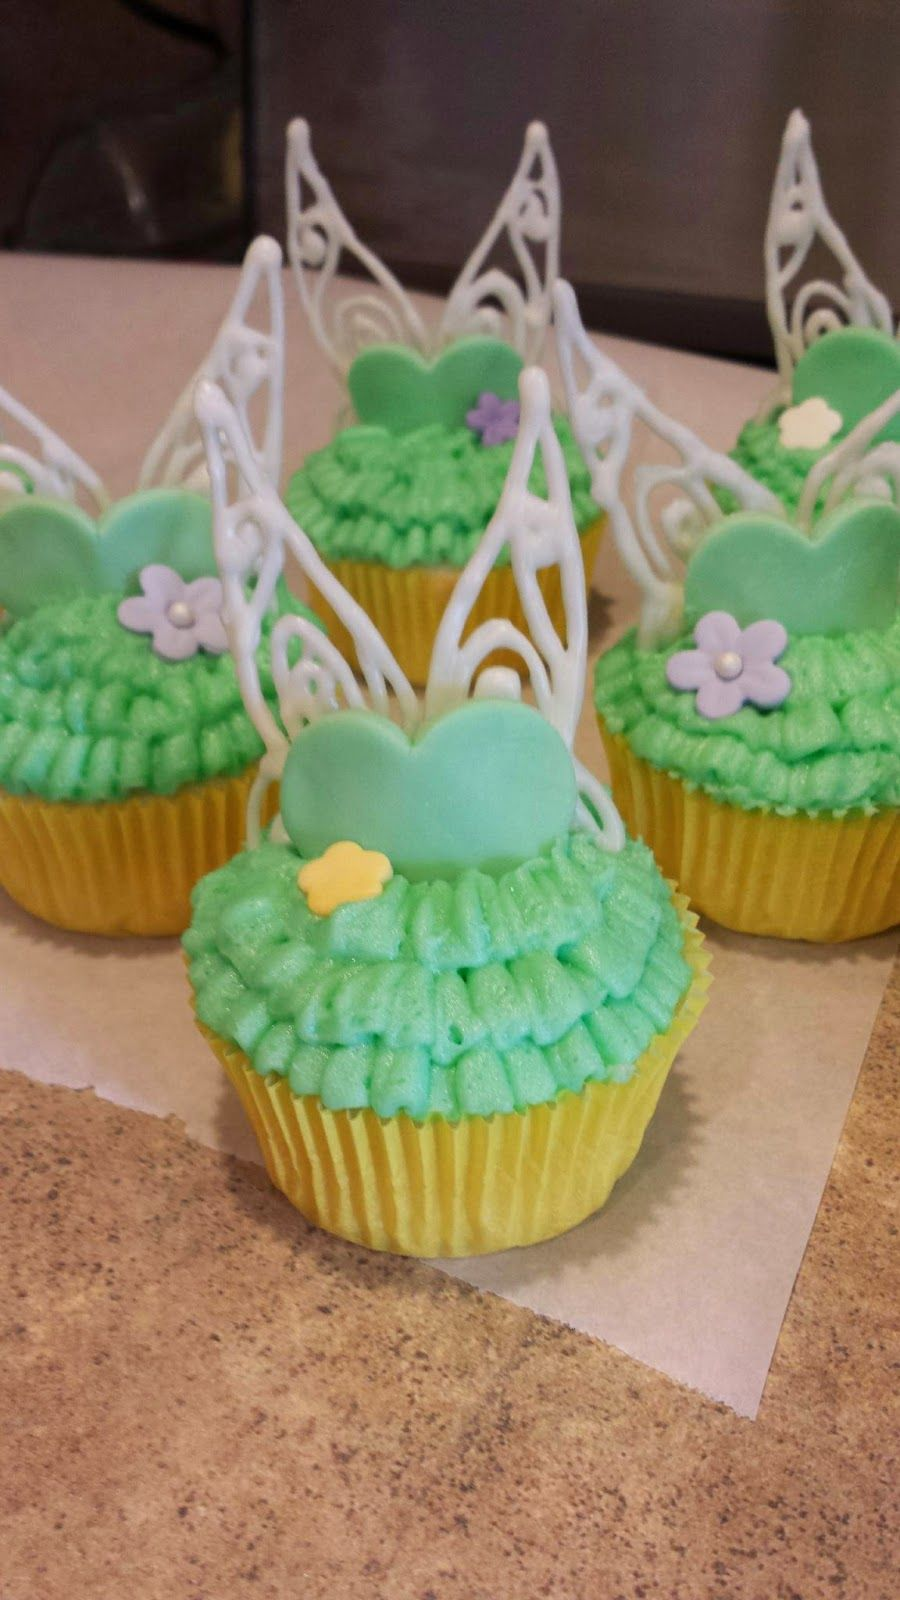 Our Family Creations Tinkerbell Cupcakes